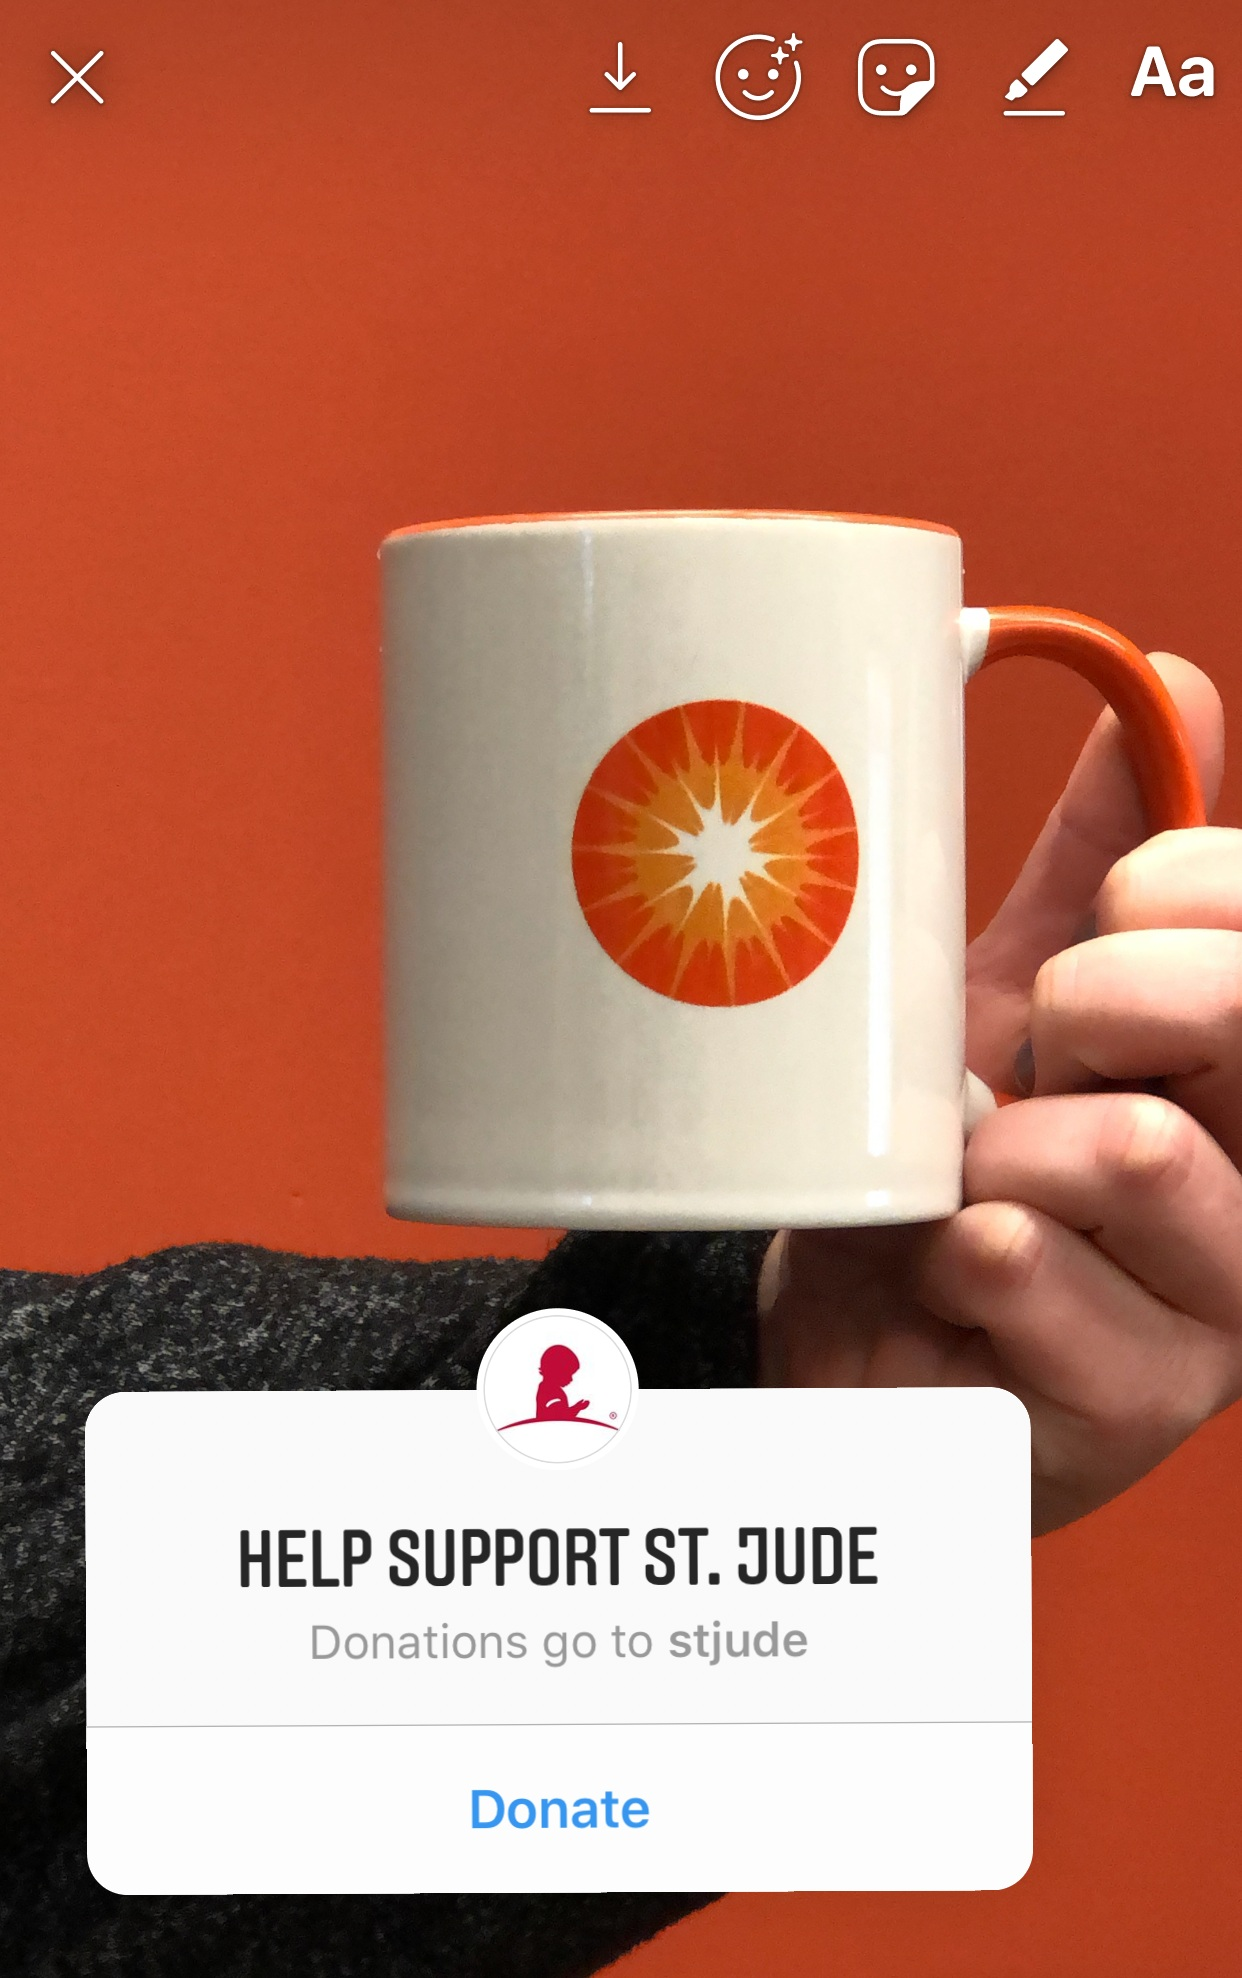 """Sparkshoppe Coffee Mug in Instagram story with """"Help Support St. Jude"""" donation sticker overlay"""